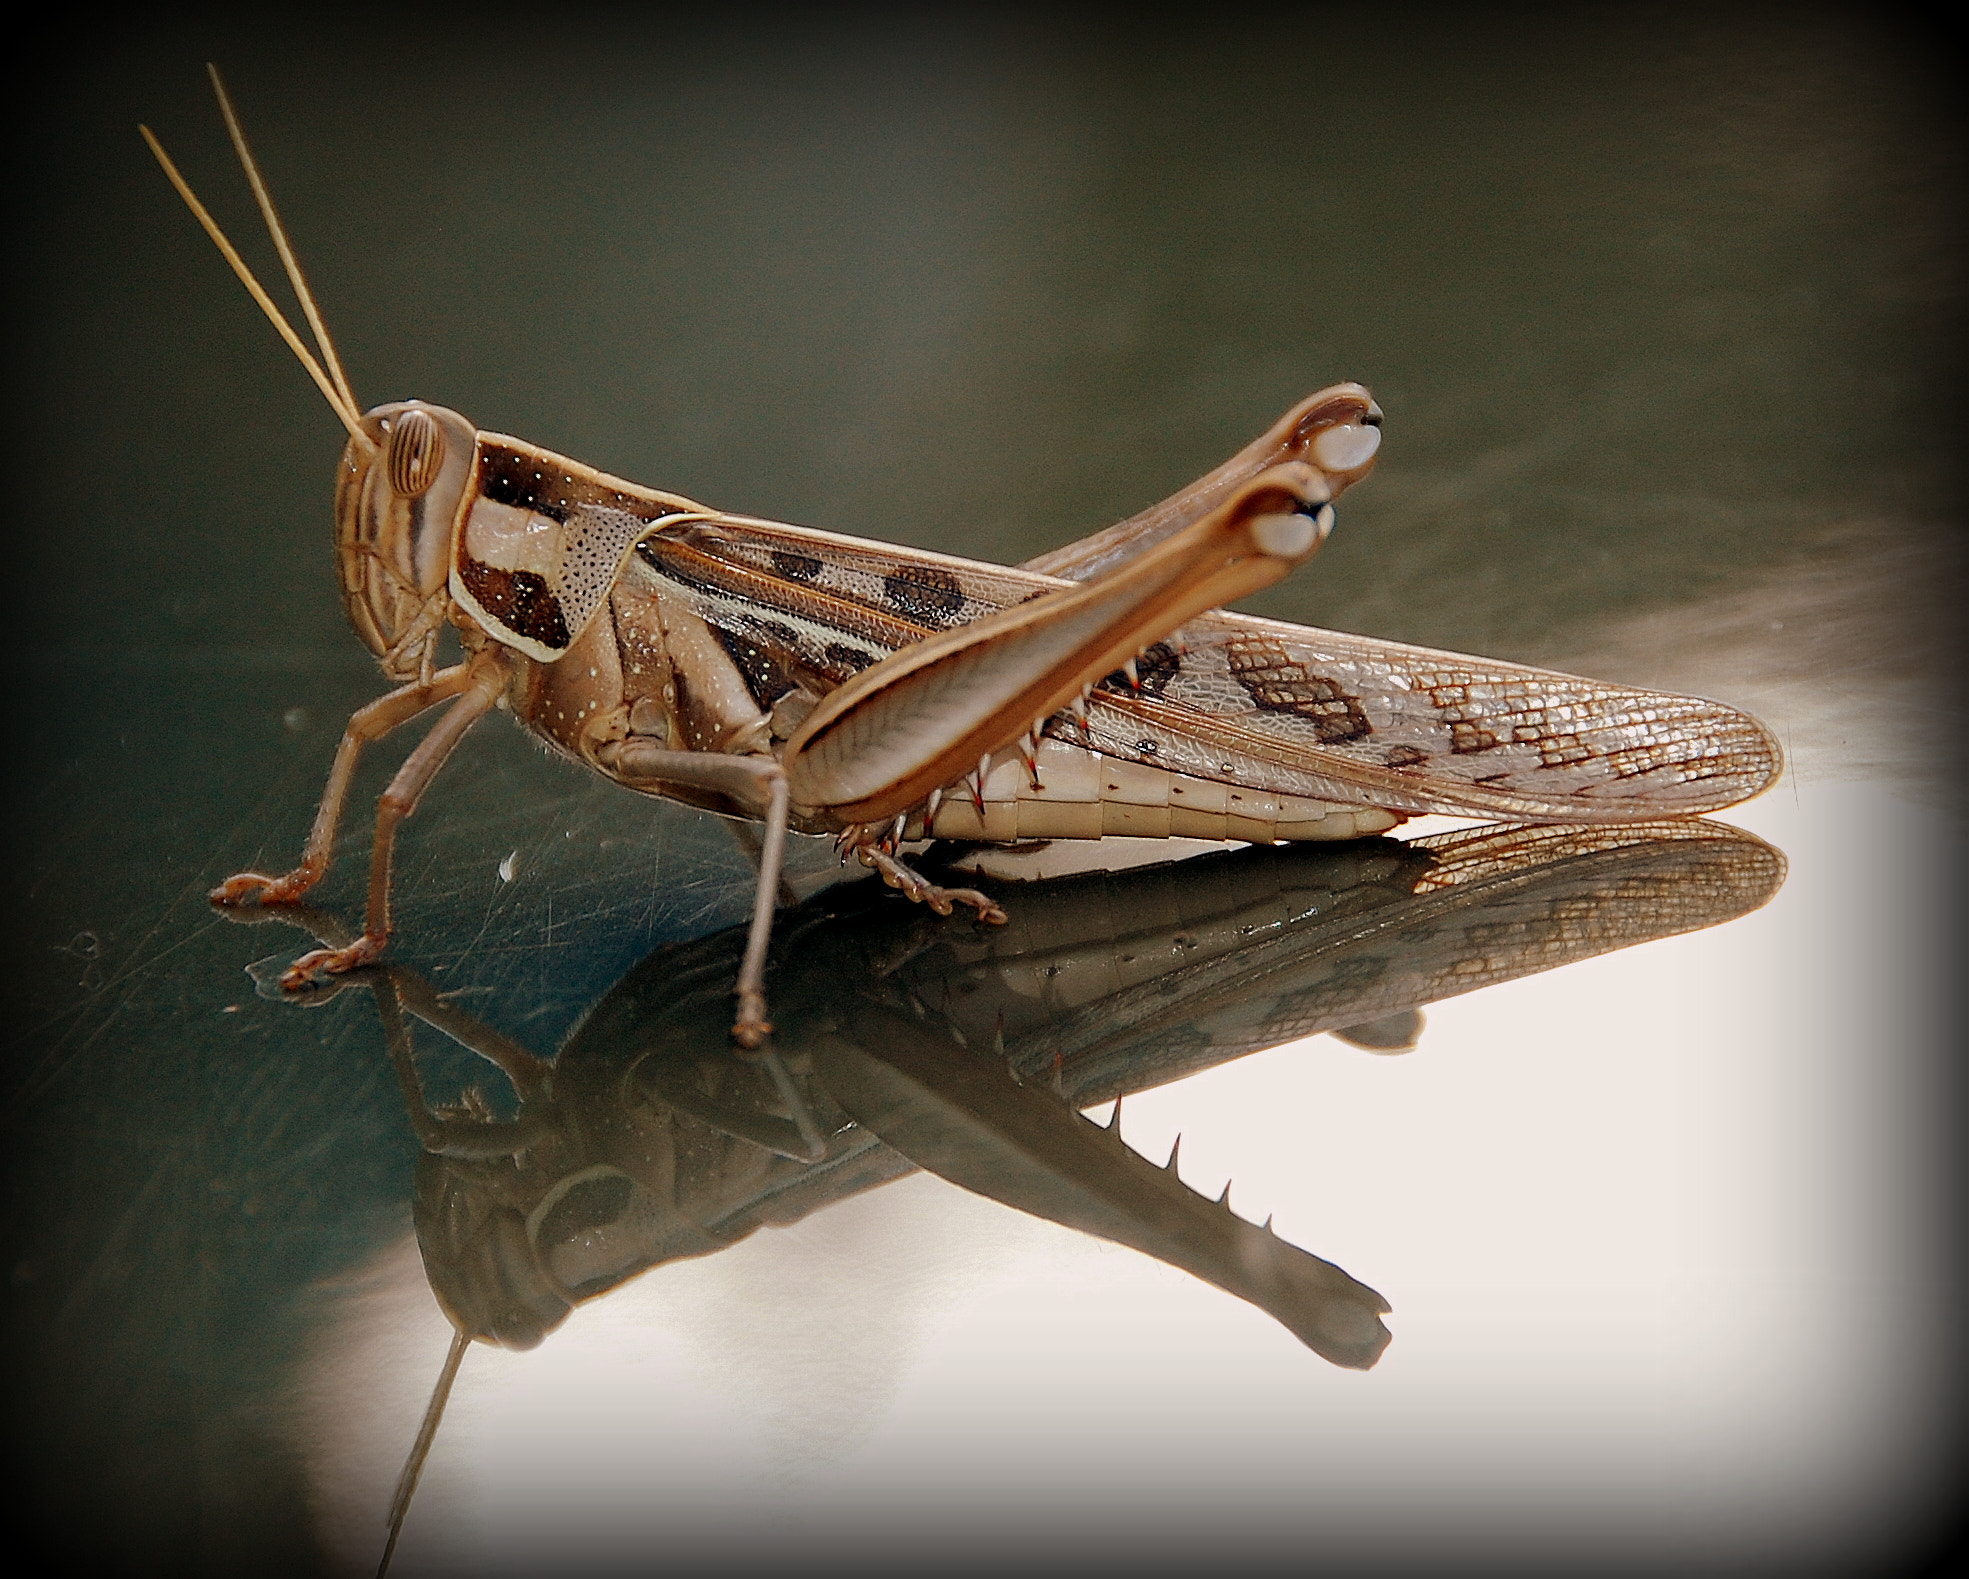 Photograph Grasshopper by Ruud Eelderink on 500px